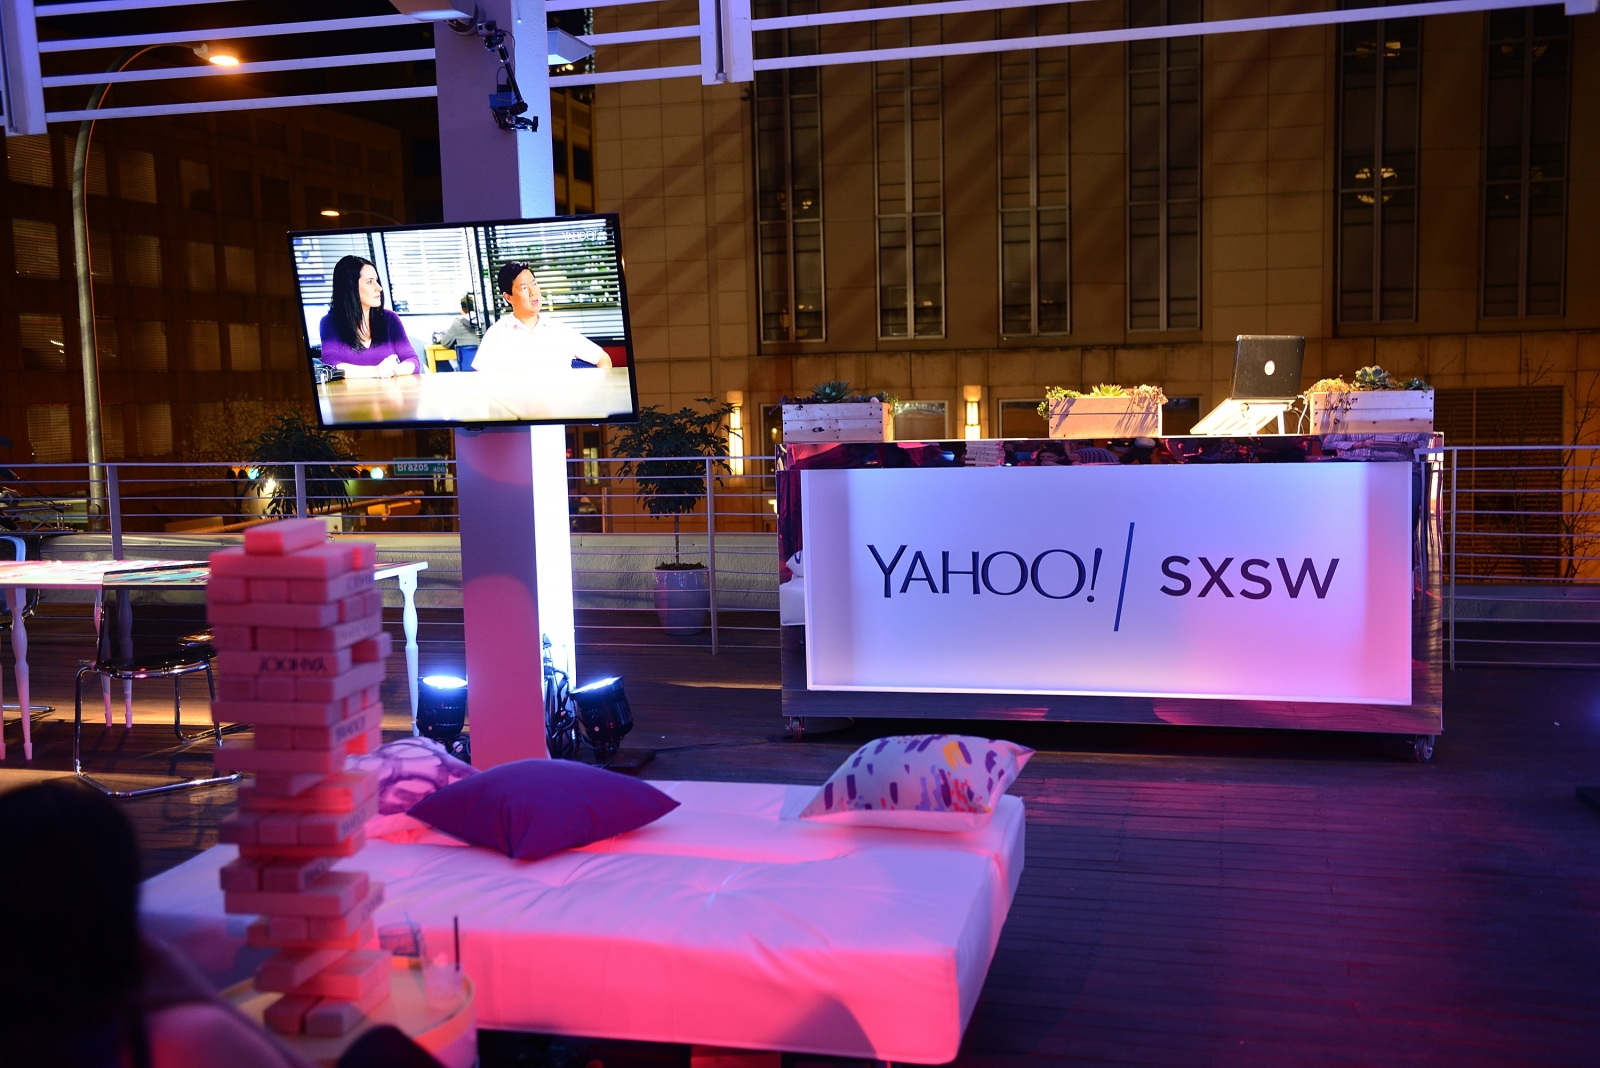 Yahoo announces time sensitive passwords at SXSW